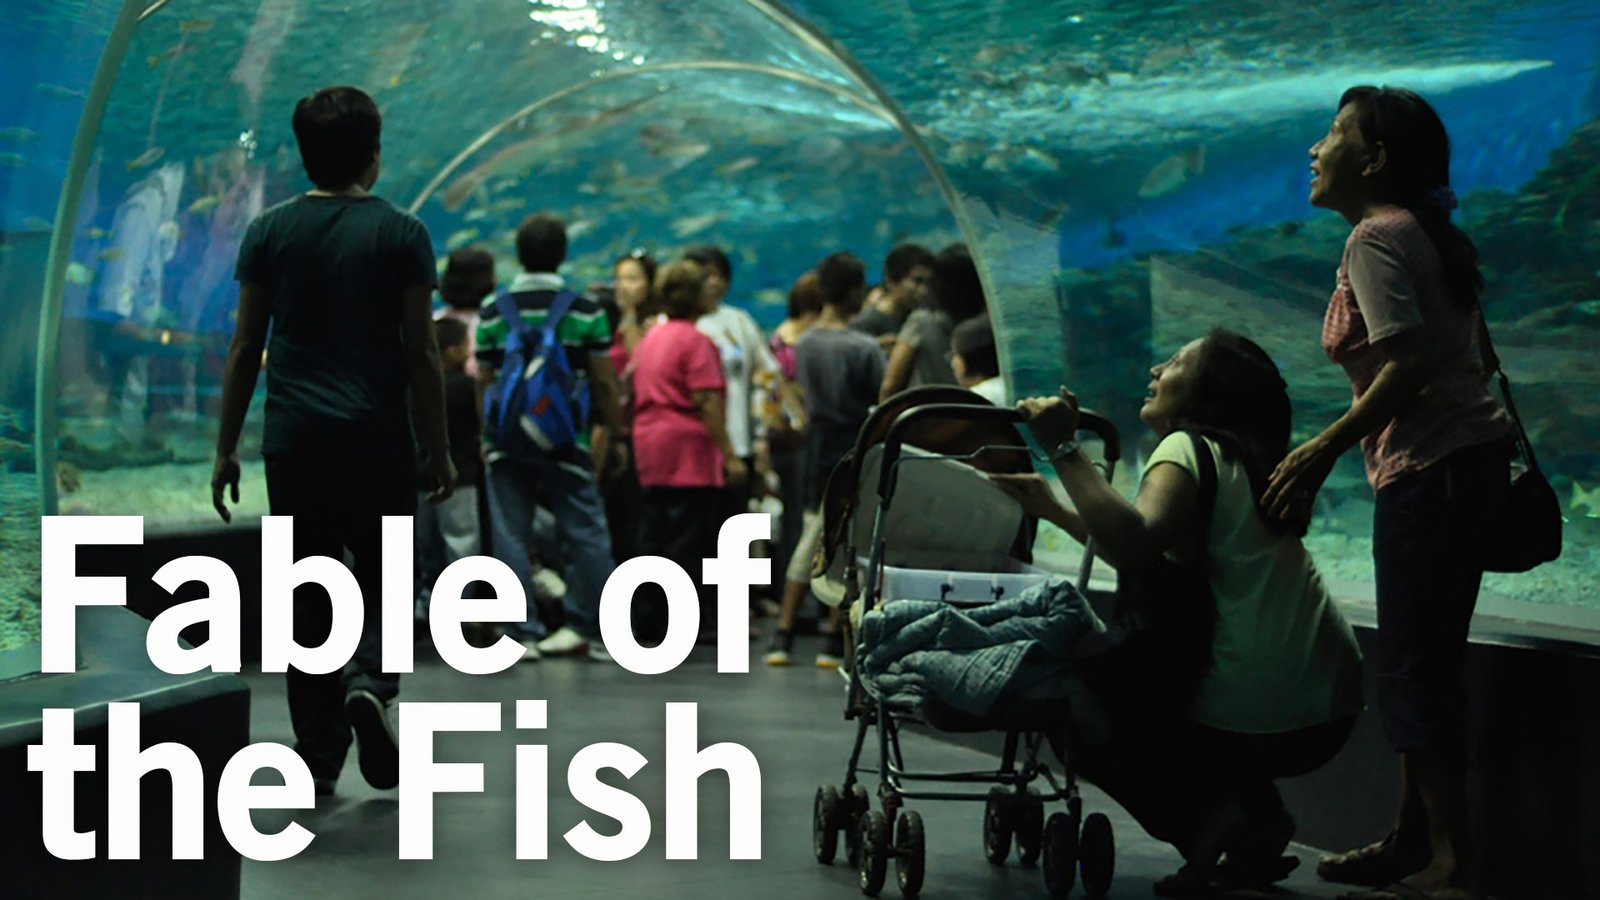 Fable of the Fish - Isda